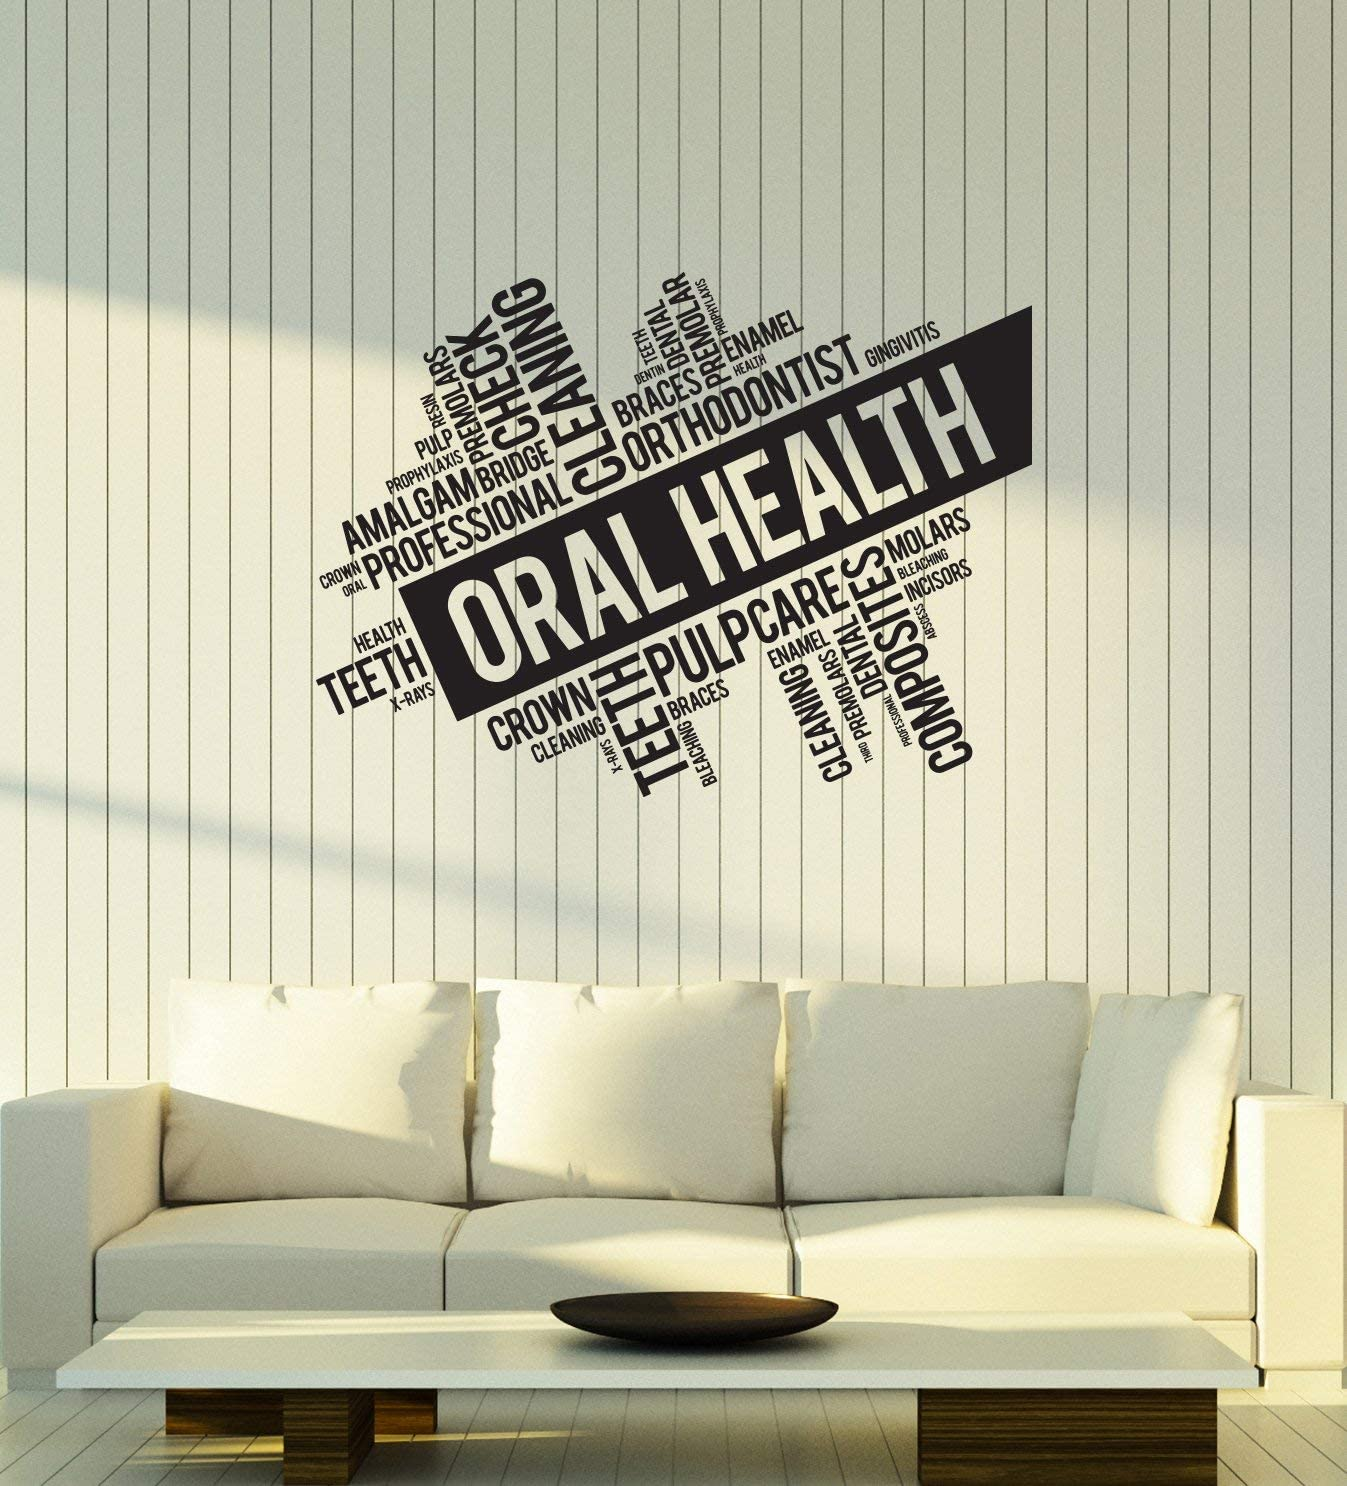 Vinyl Wall Decal Oral Health Words Cloud Dentistry Dentist Office Interior Dental Clinic Stickers Mural Large Decor (ig5754) Black